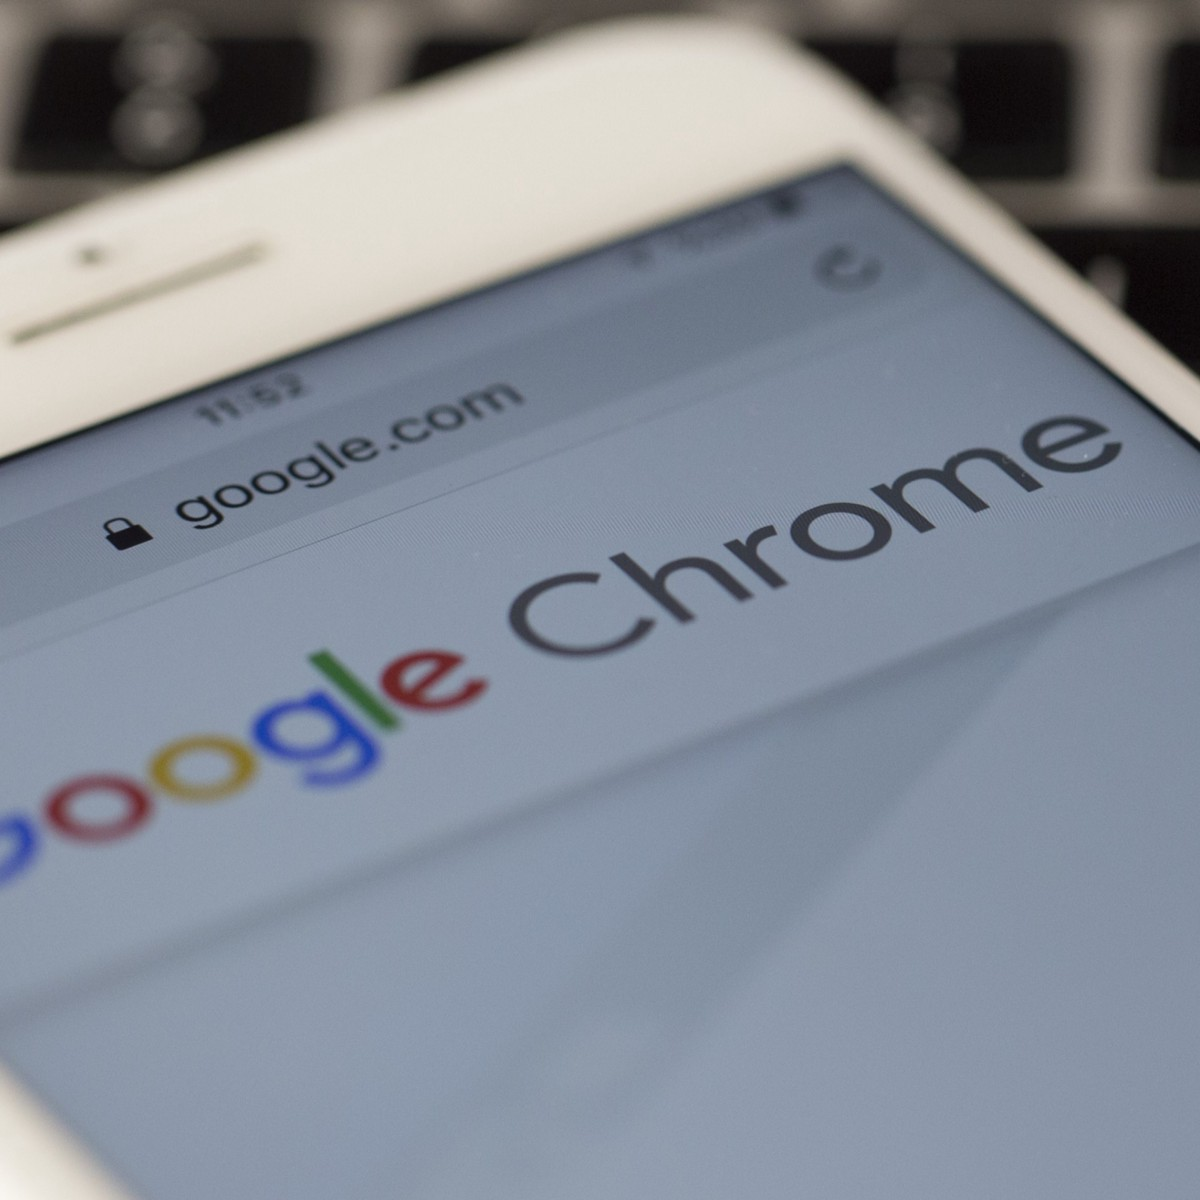 Google Is Removing an Insidious Tracking Tool From Its Browser